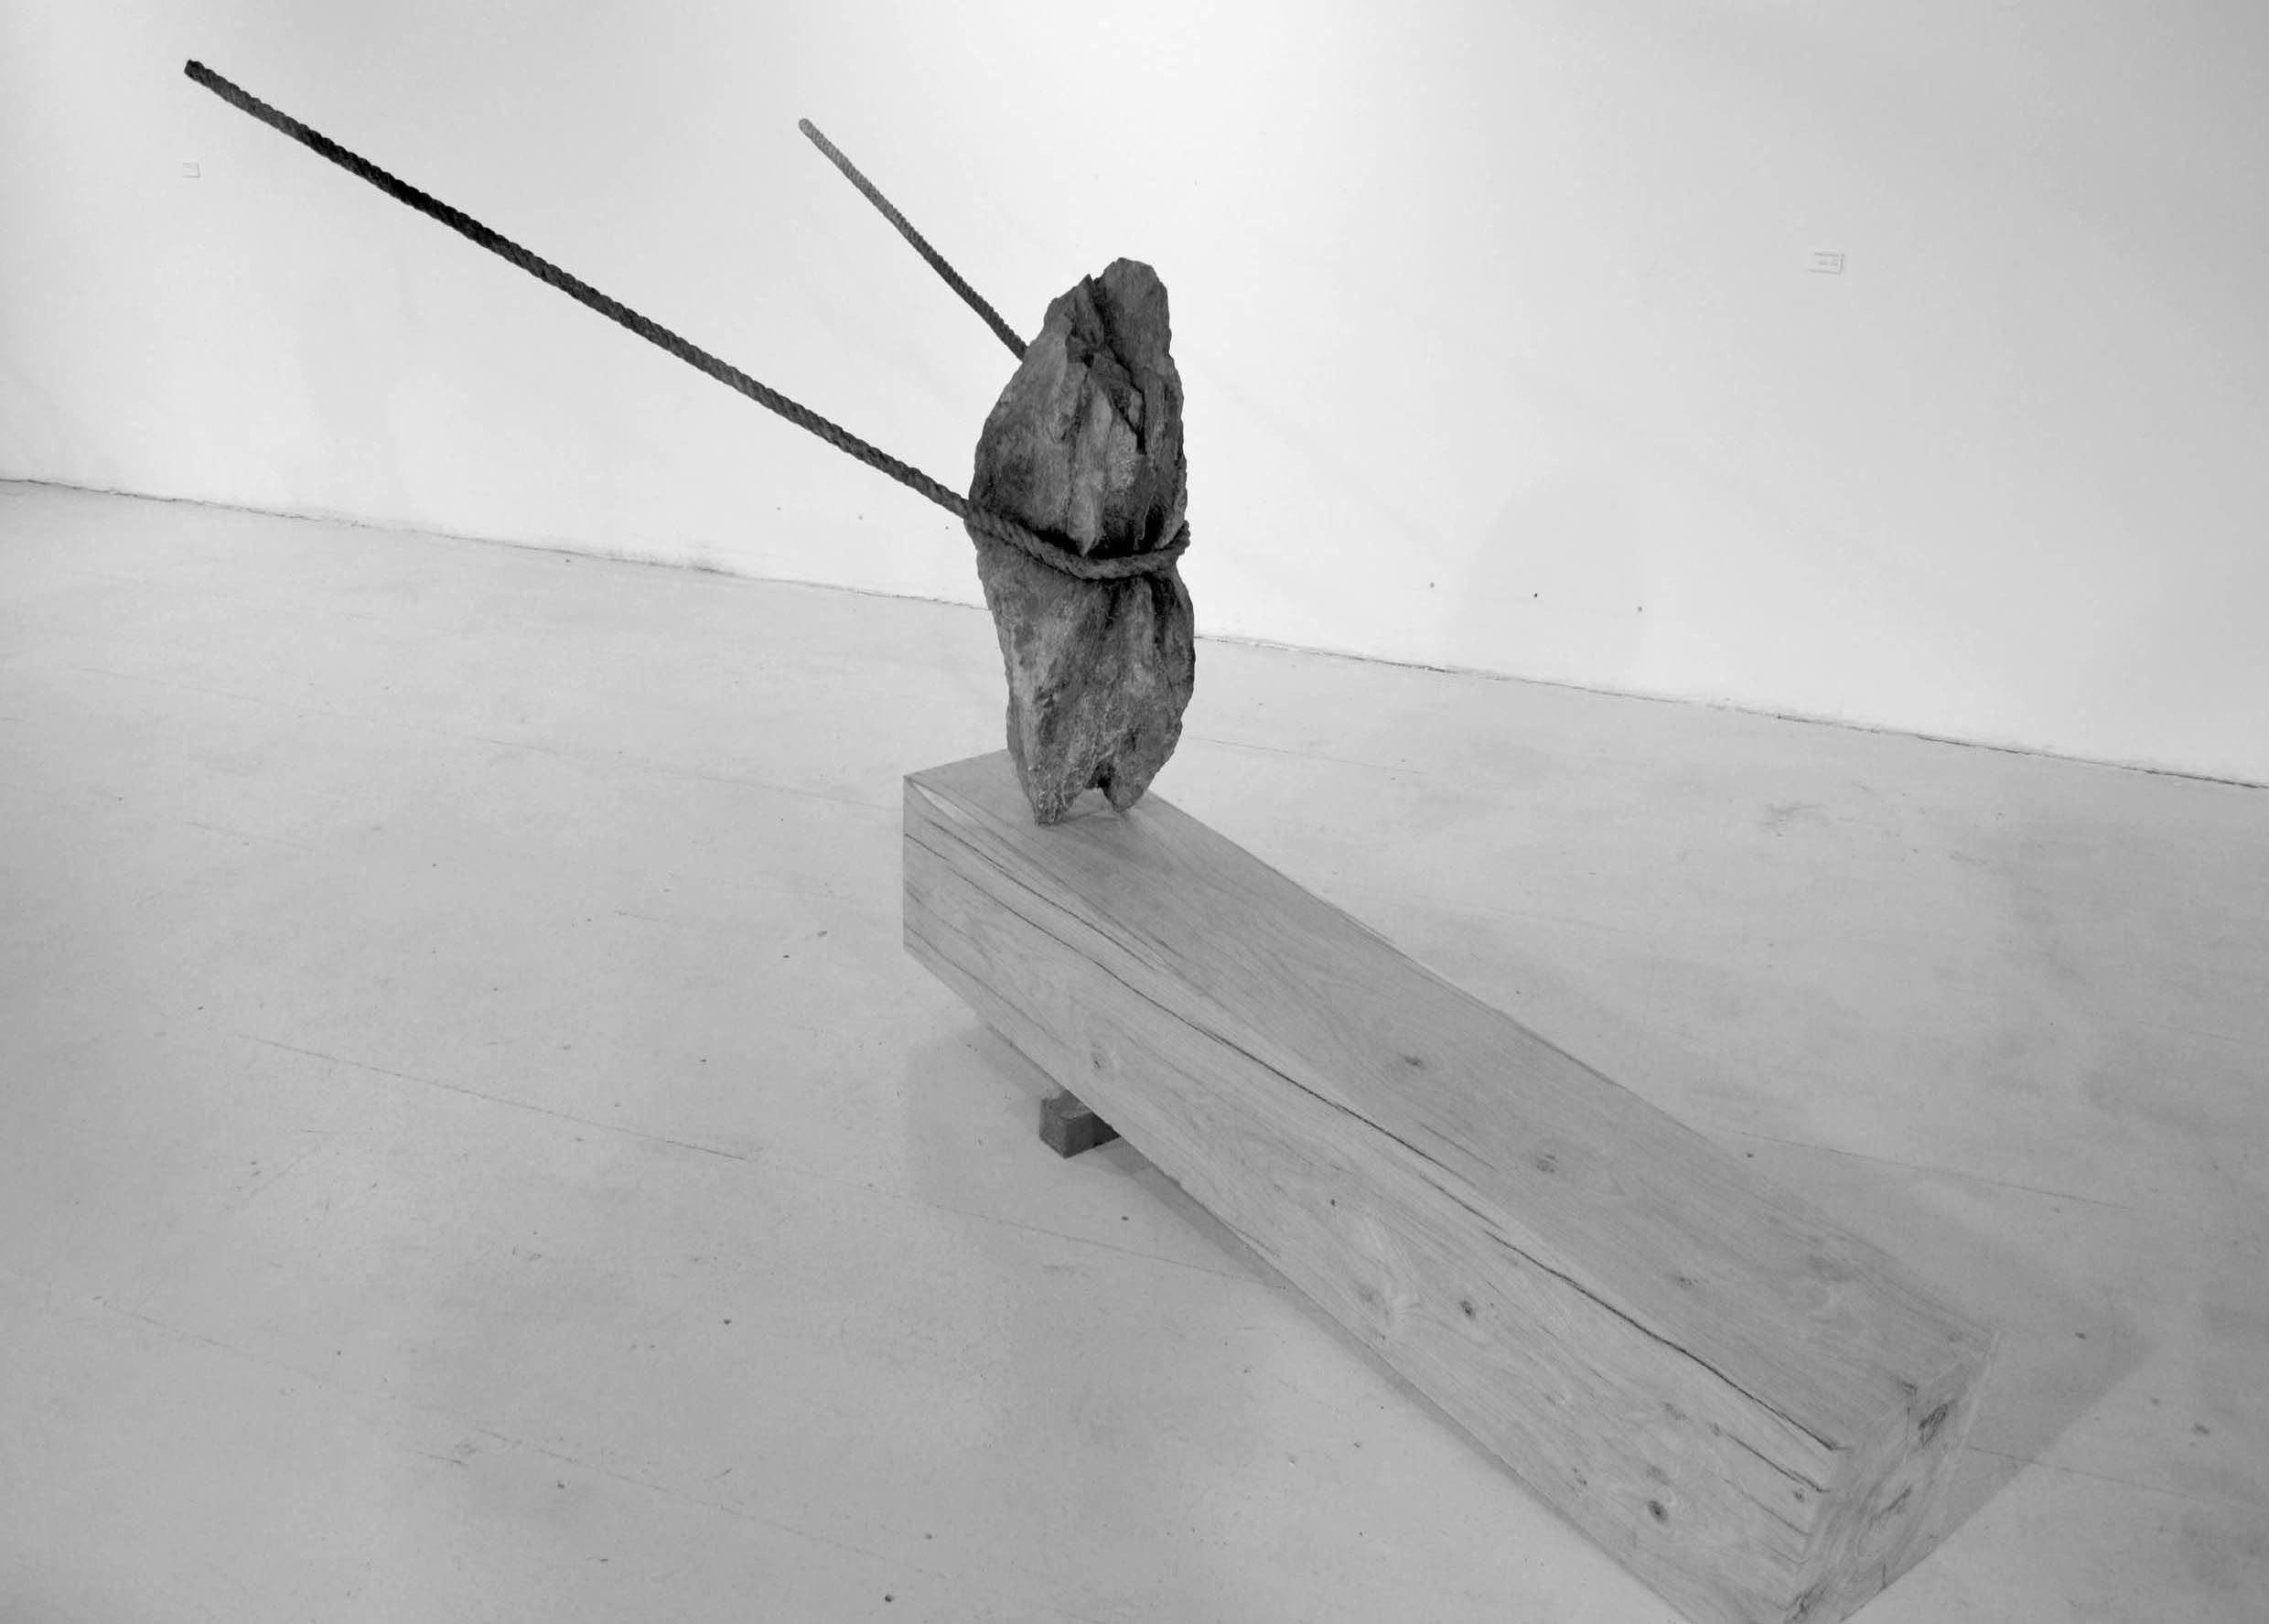 Attraction du vide II,Romain Langlois,Sculpture, detail 2